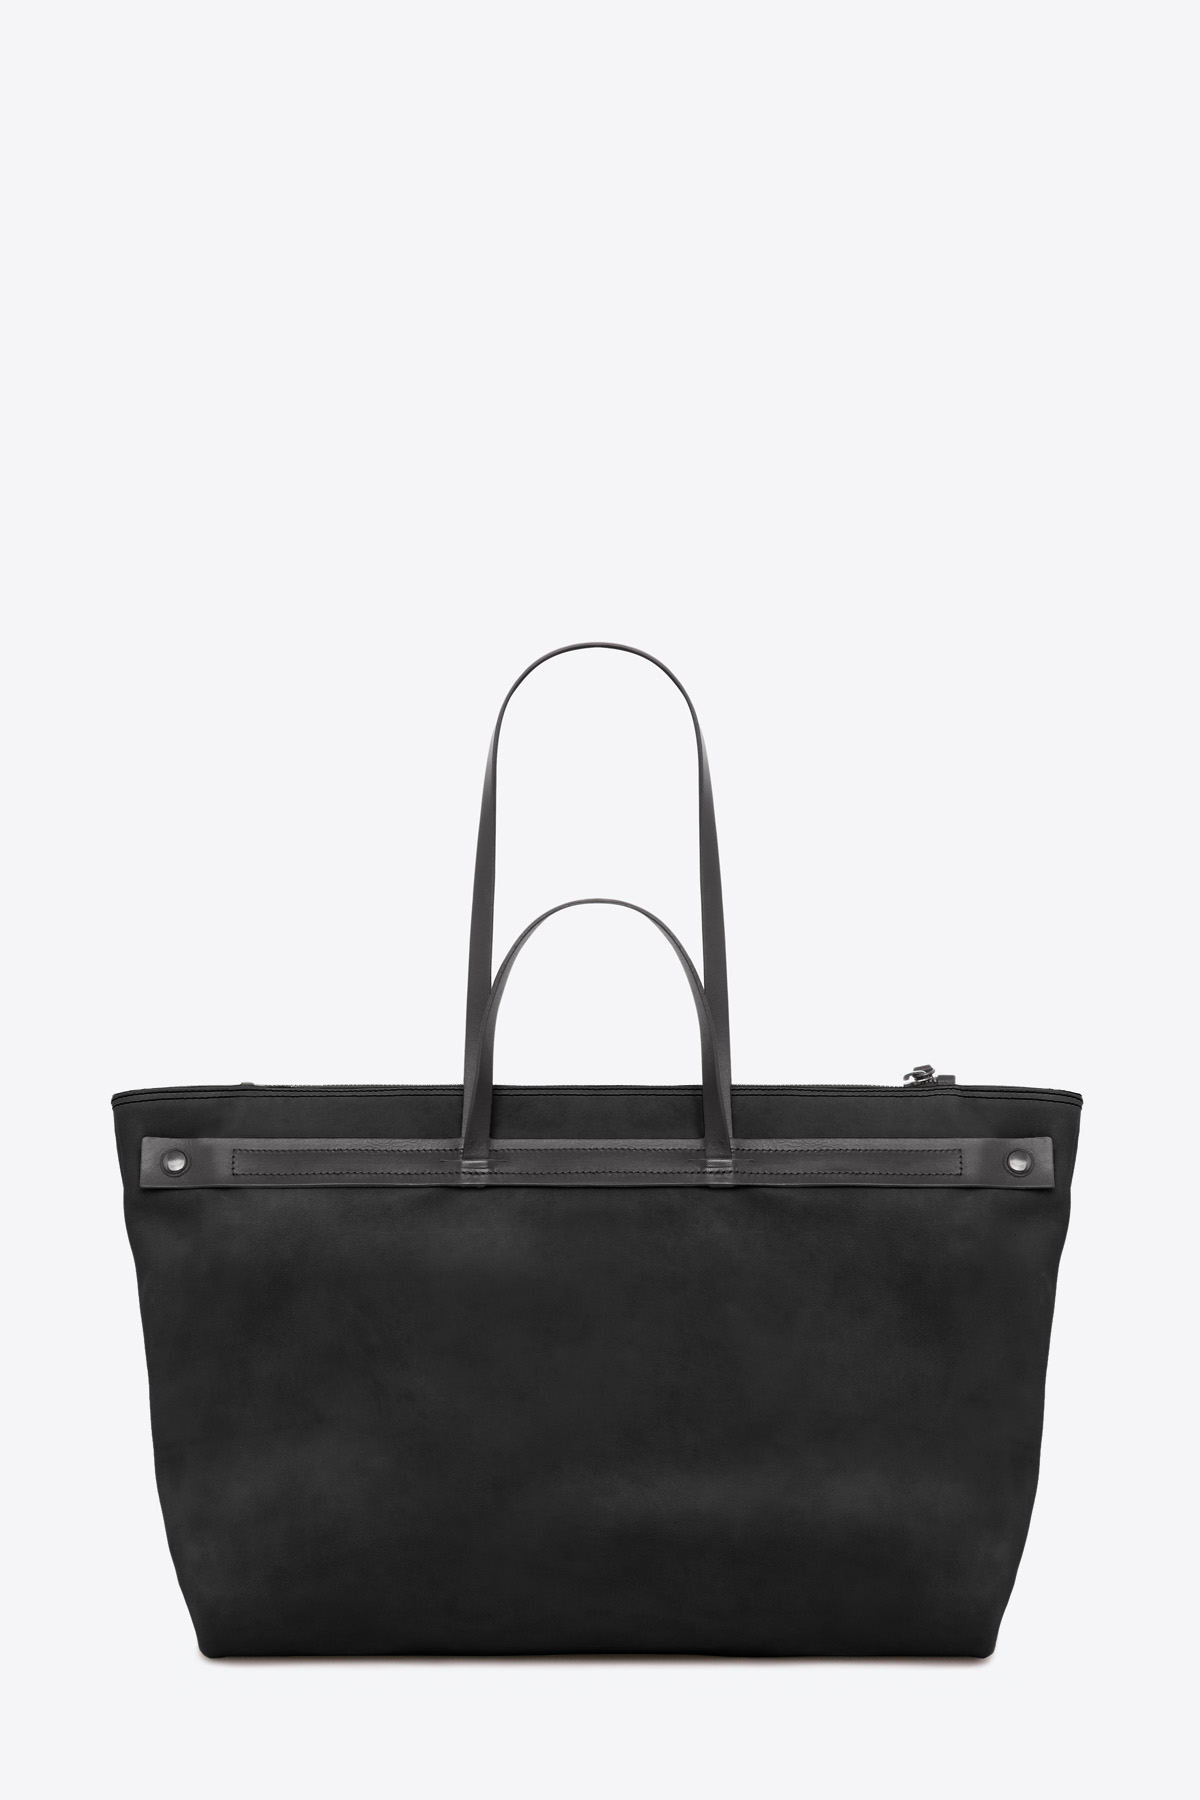 dclr007l-tote-a1-black-back2